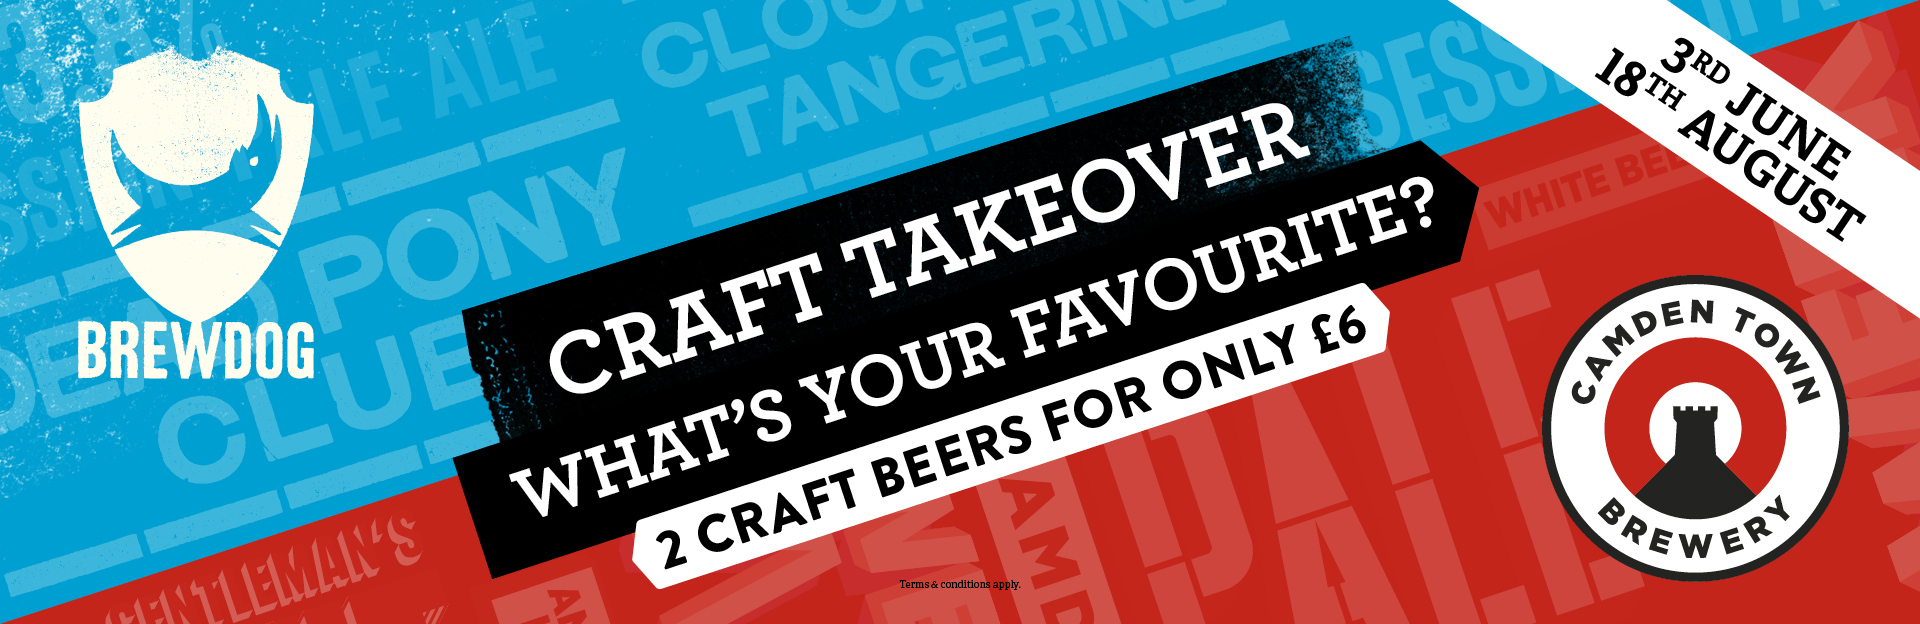 Craft Takeover at The Old Royal